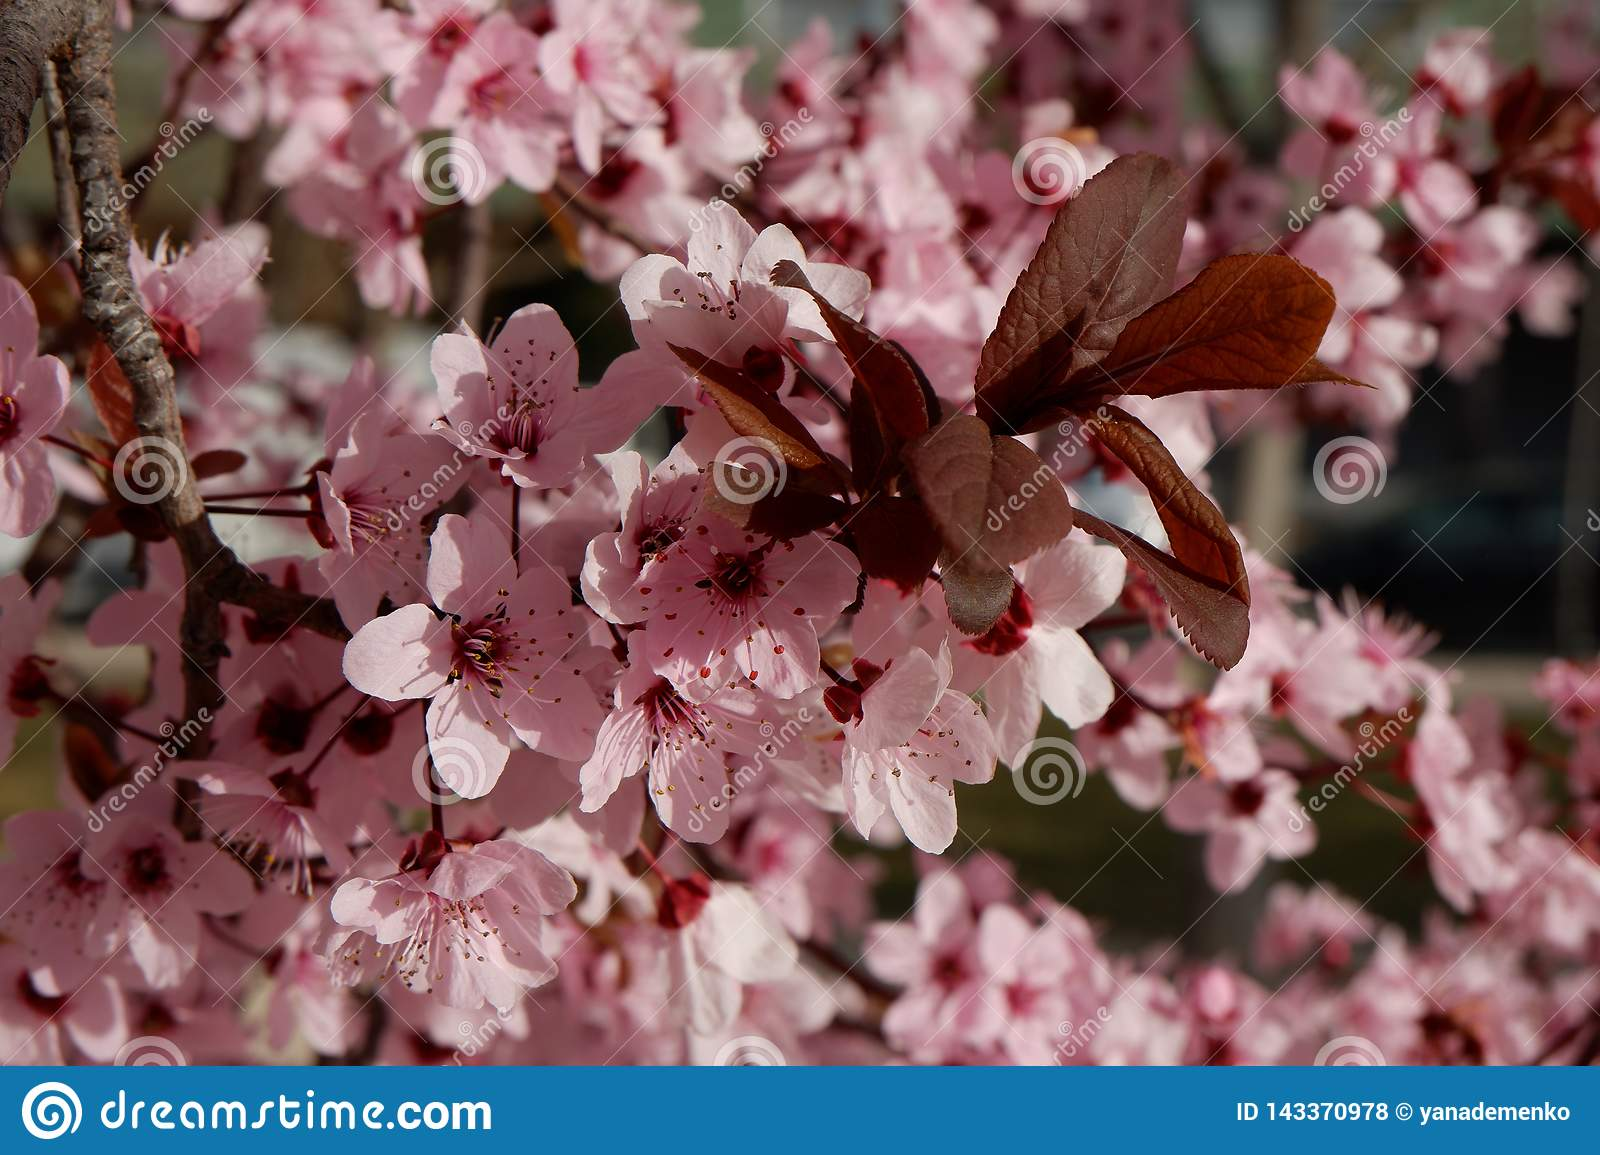 Close up on Japanese plum tree with tender pink flowers